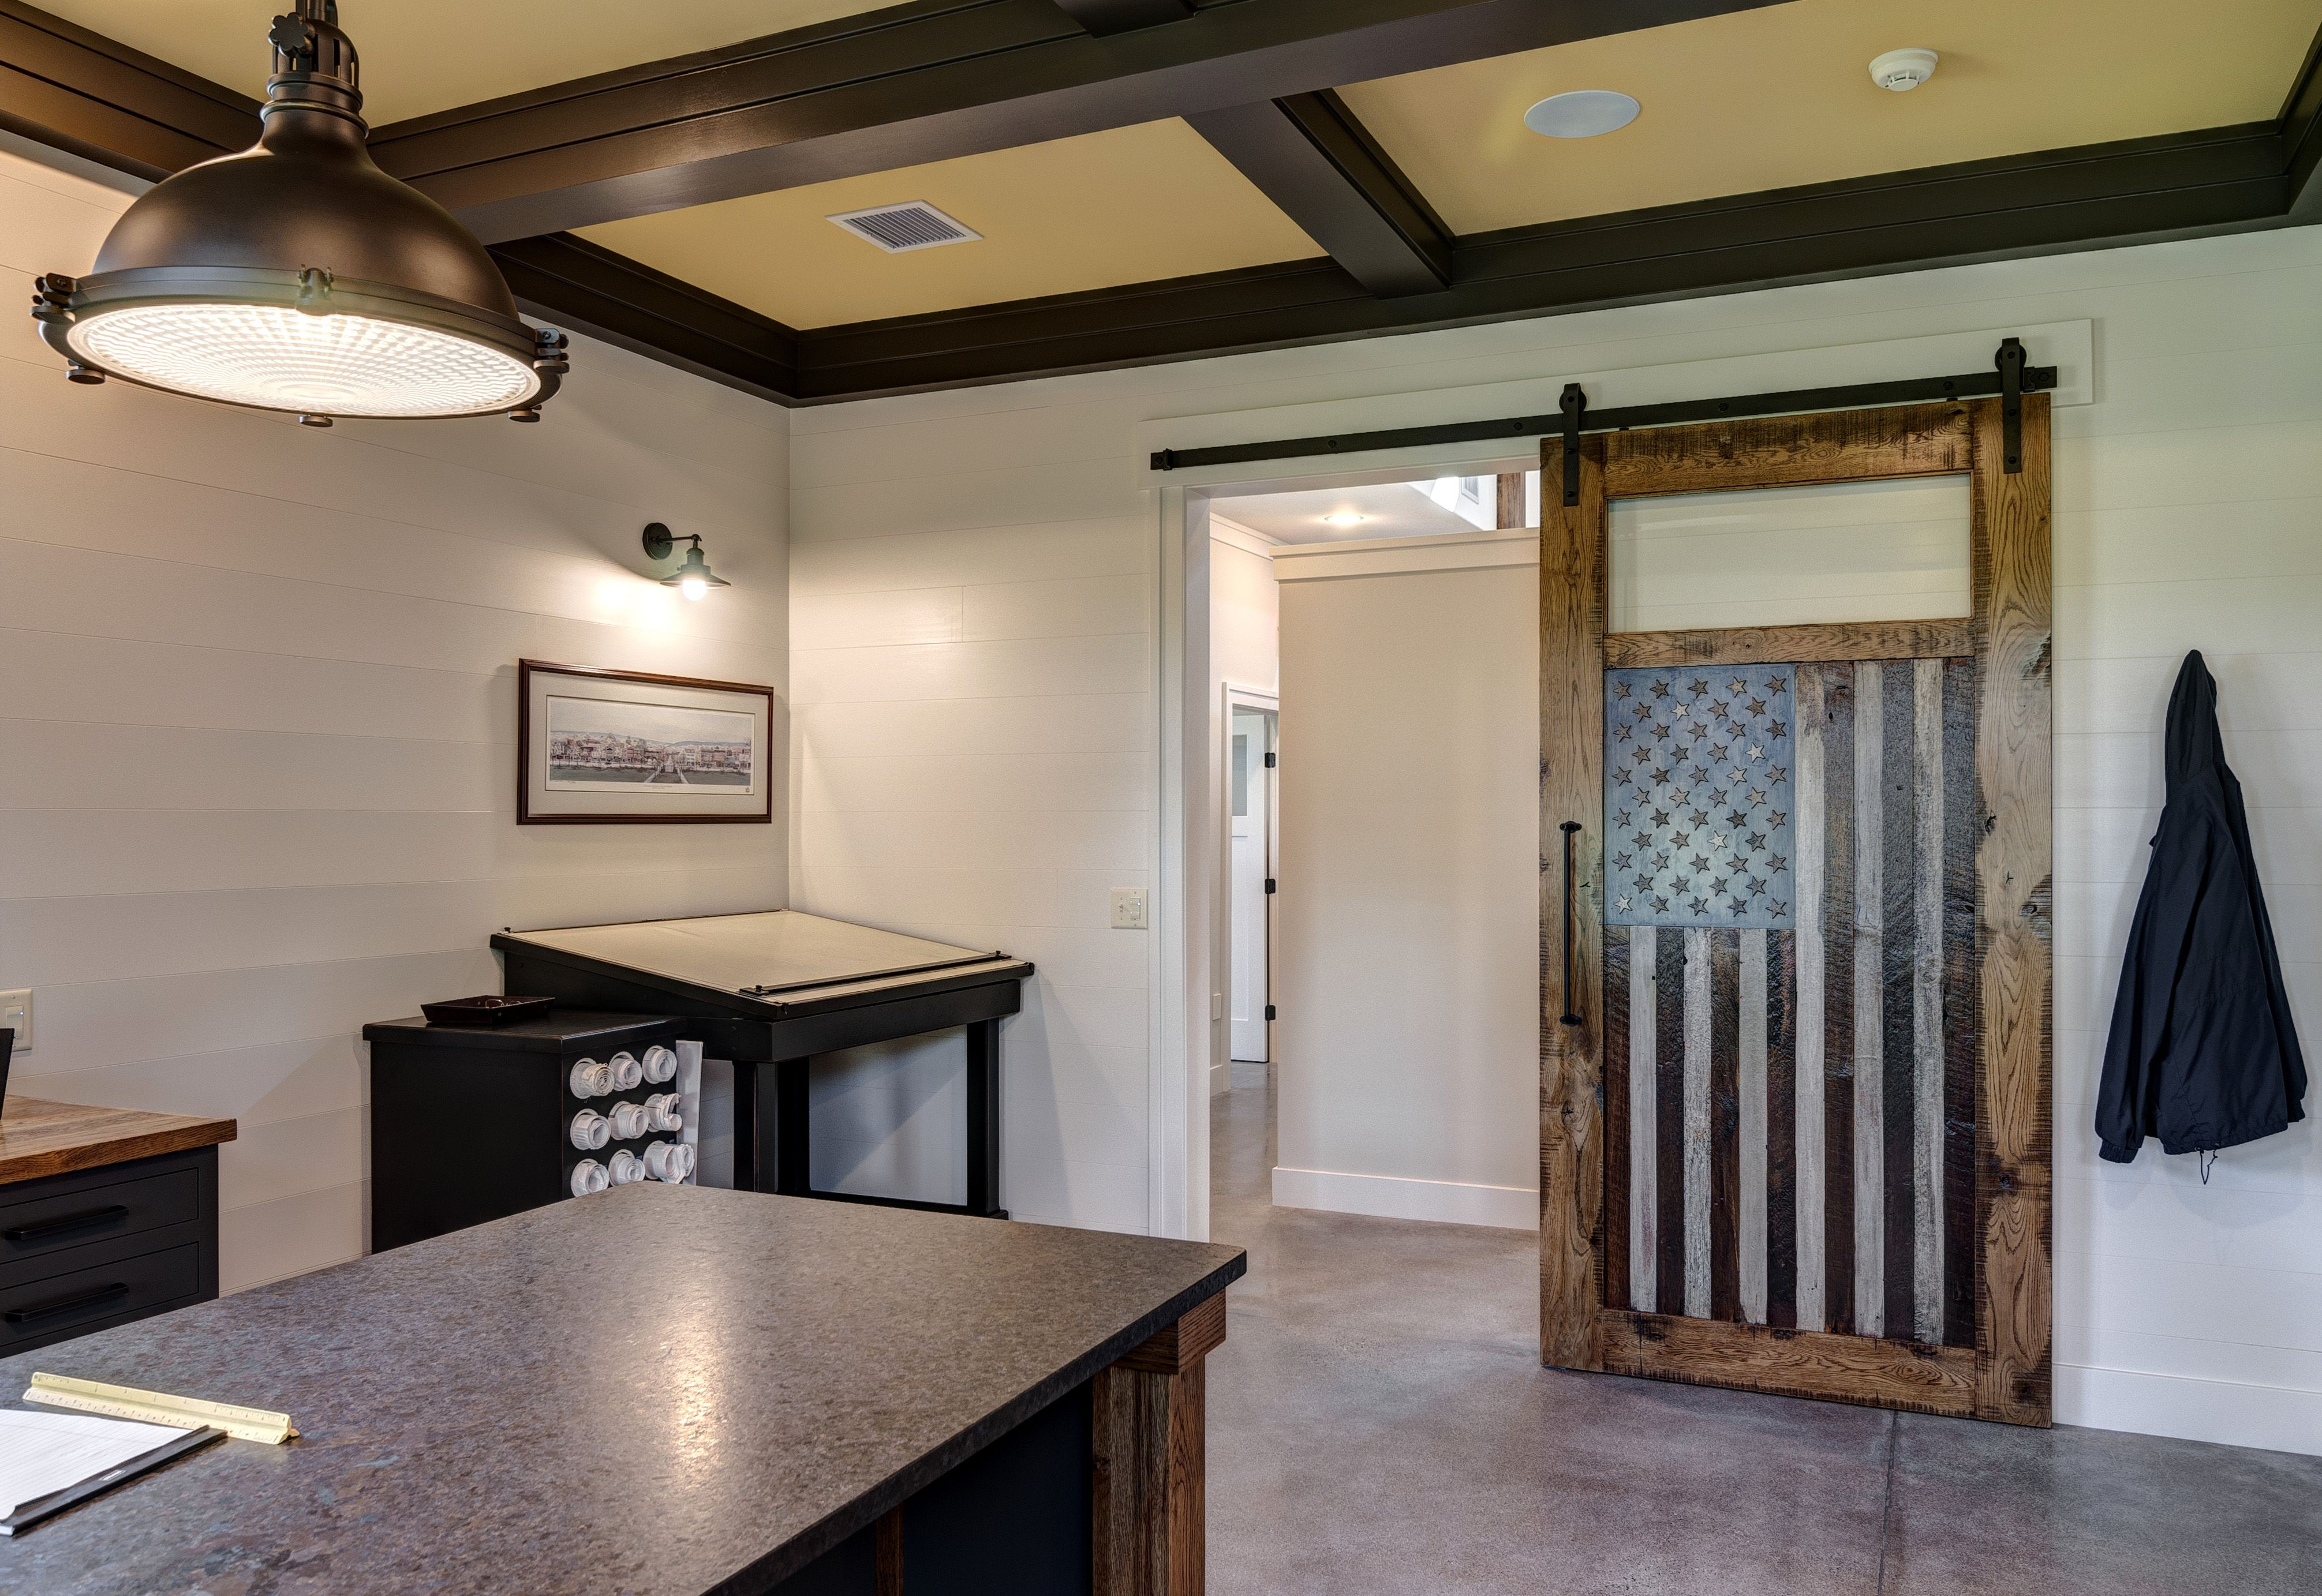 Custom Commercial Office With American Flag Barn Door Built Ins And Tray Ceilings Farinelli Construction Mechan Barn Doors Sliding Commercial Office Home